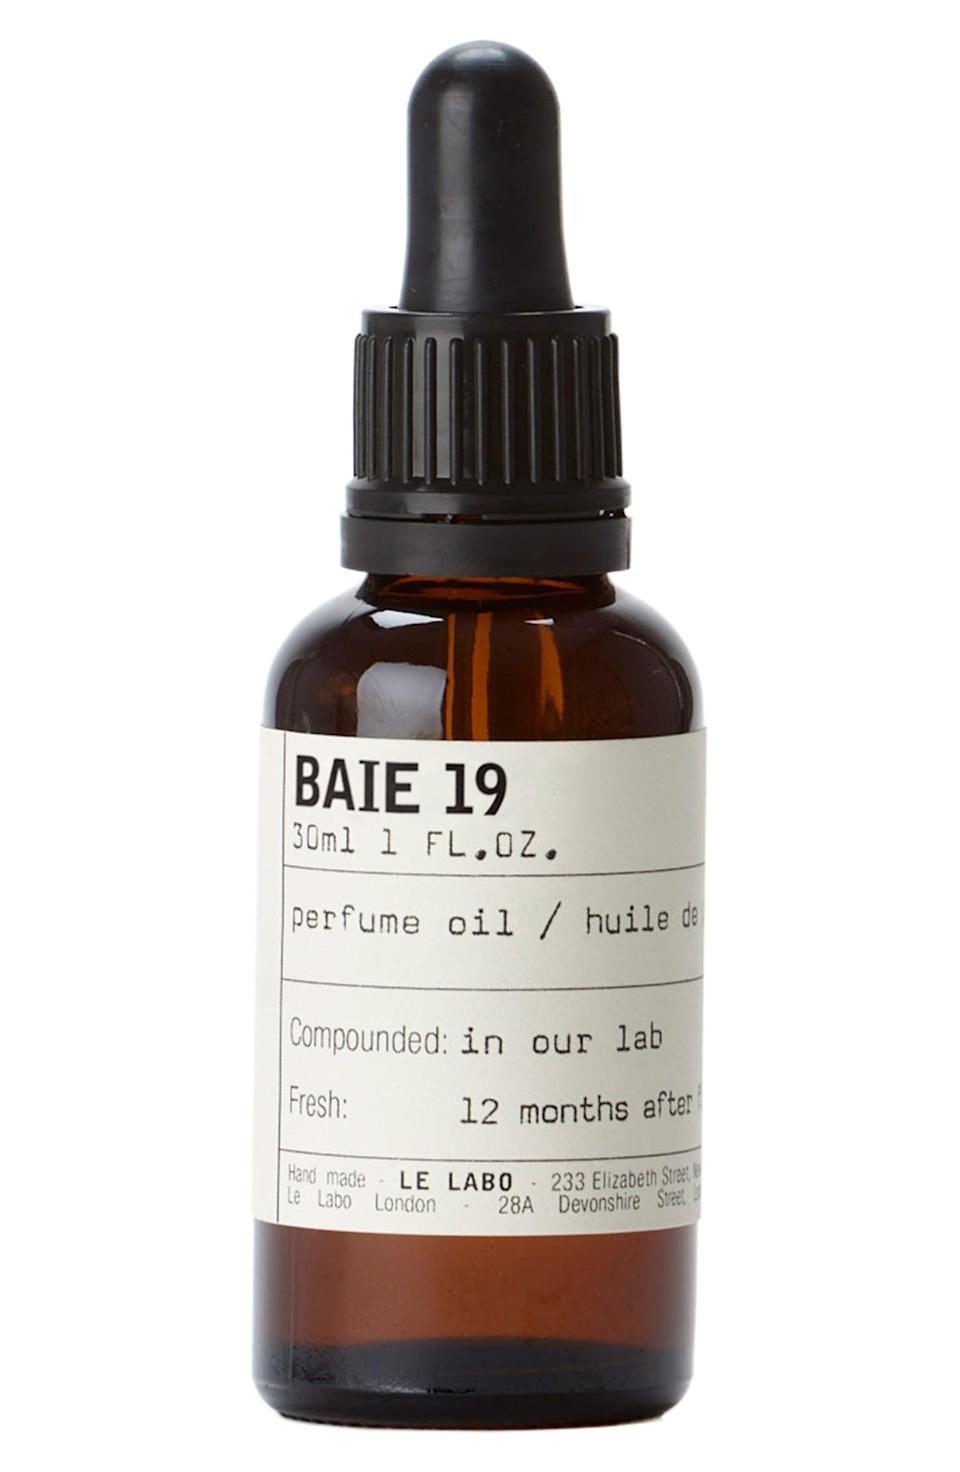 """<p><strong>Le Labo</strong></p><p>nordstrom.com</p><p><strong>$152.00</strong></p><p><a href=""""https://go.redirectingat.com?id=74968X1596630&url=https%3A%2F%2Fshop.nordstrom.com%2Fs%2Fle-labo-baie-19-perfume-oil%2F5575753&sref=https%3A%2F%2Fwww.marieclaire.com%2Fbeauty%2Fg32959650%2Fbest-fall-perfumes%2F"""" rel=""""nofollow noopener"""" target=""""_blank"""" data-ylk=""""slk:SHOP IT"""" class=""""link rapid-noclick-resp"""">SHOP IT</a></p><p>Juniper berries, patchouli, and green leaves make for a pleasurable earthy scent—Rub this oil on your pulse points and even at the ends of your hair as an alternative to your classic eau de toilette. </p>"""